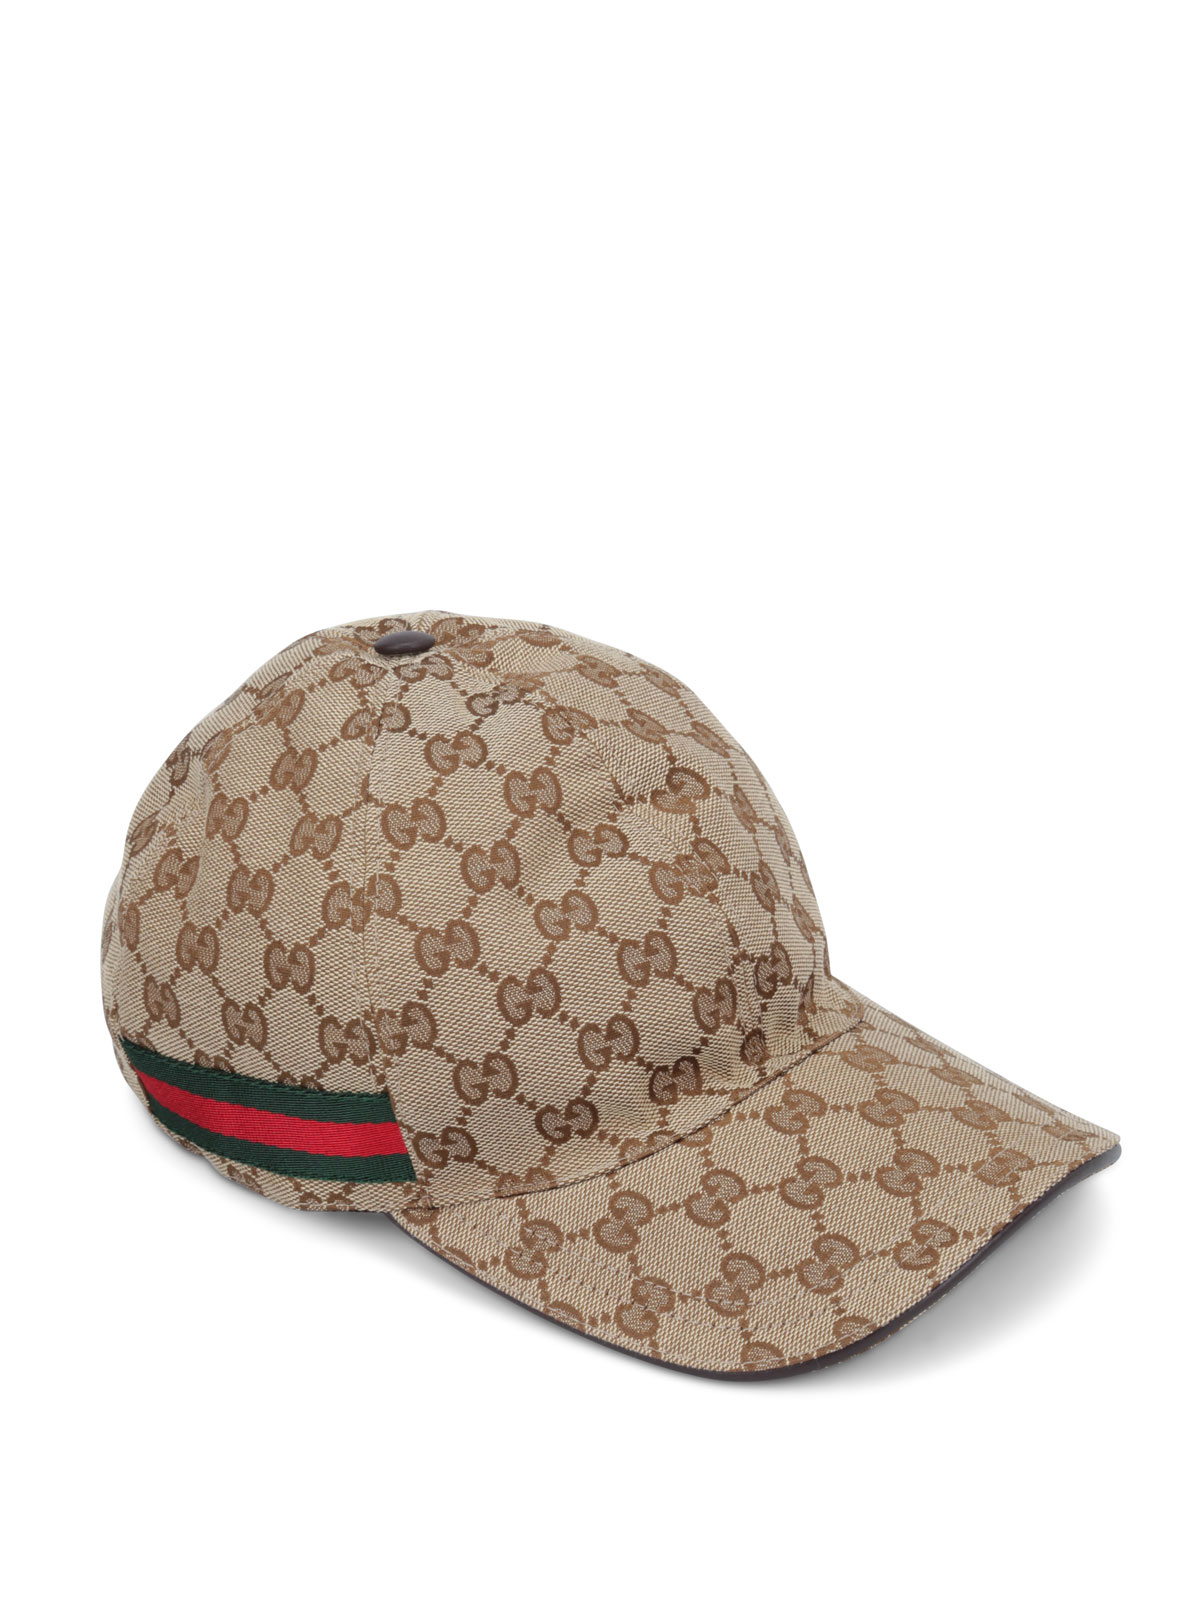 original gg baseball cap by gucci hats caps ikrix